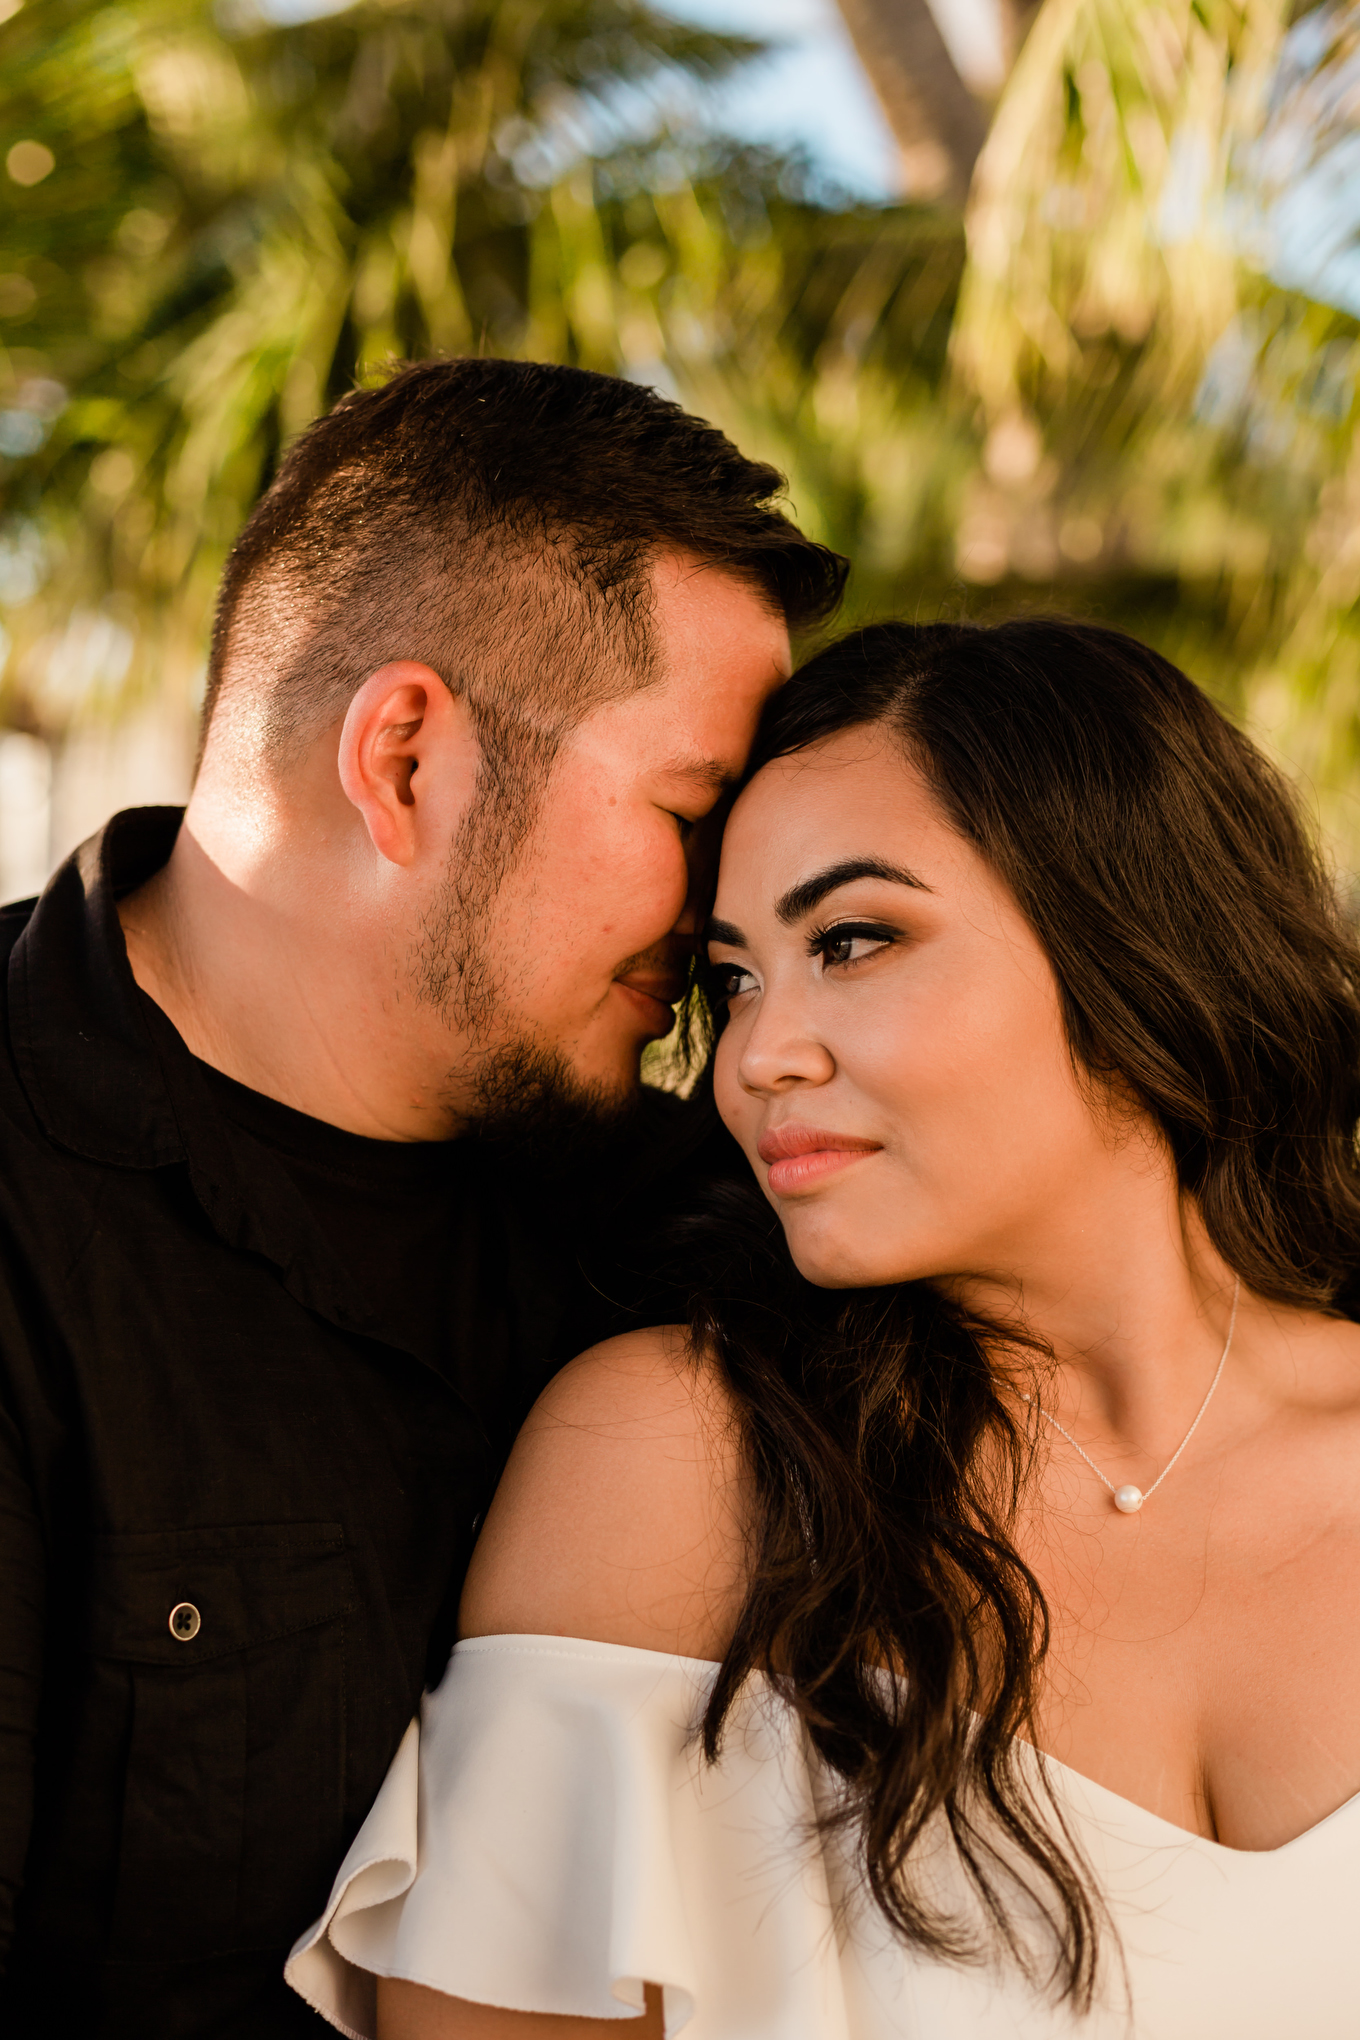 21PIXELS_Guam_Engagement_Photographer185.JPG